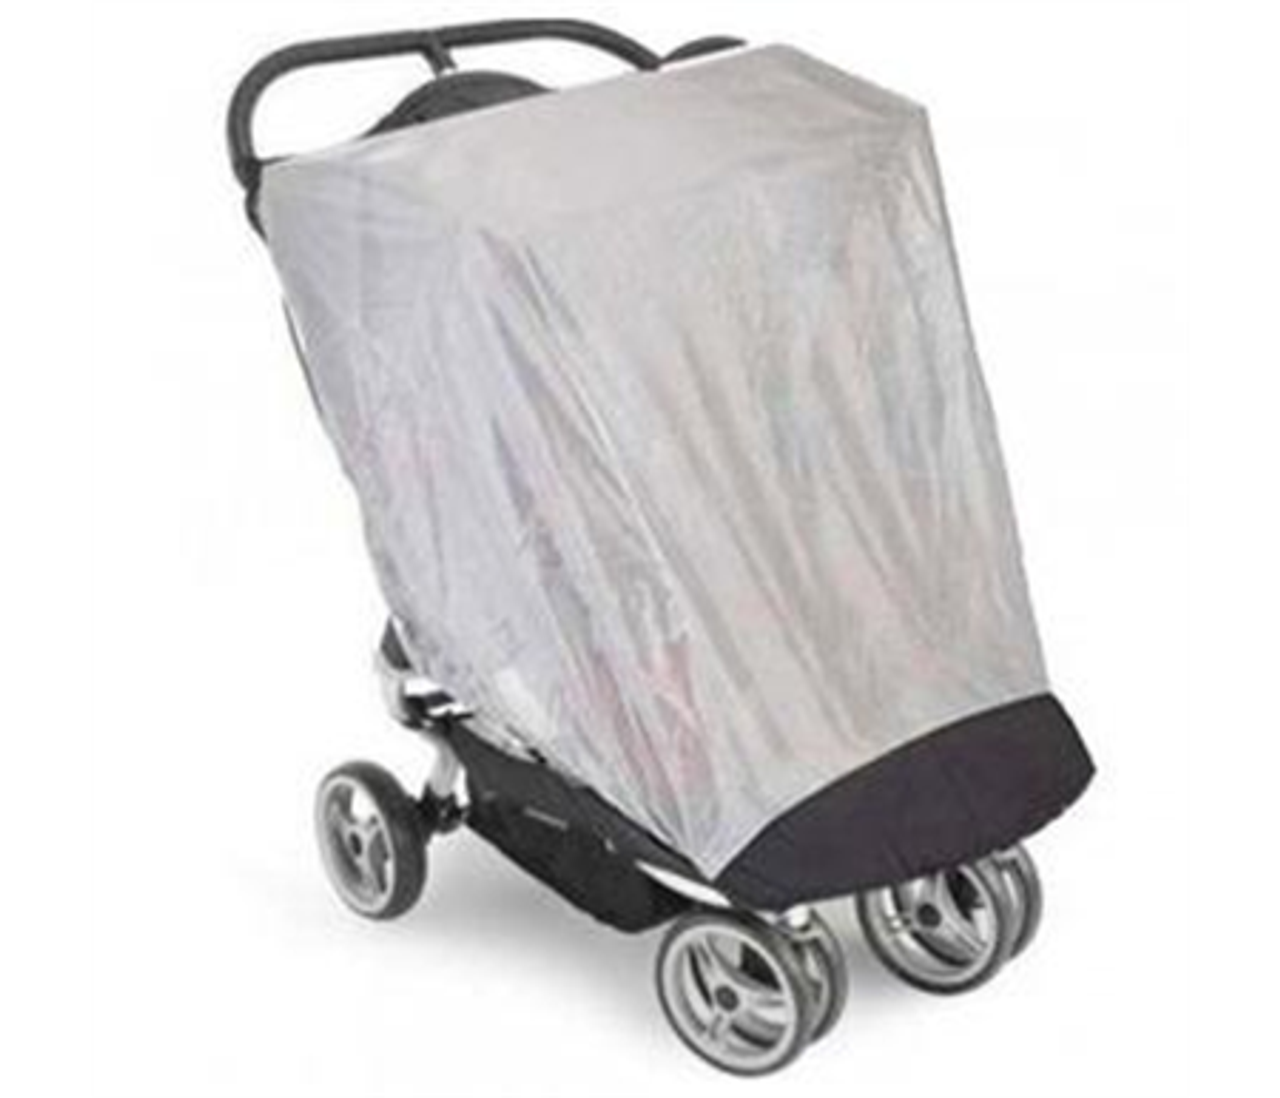 Baby Jogger Double Bug Canopy for City Mini at Baby Barn Discounts Baby Jogger City Mini Double Bug Canopy completely encloses the front and side of the stroller with a fine woven mesh while providing ventilation for your child.